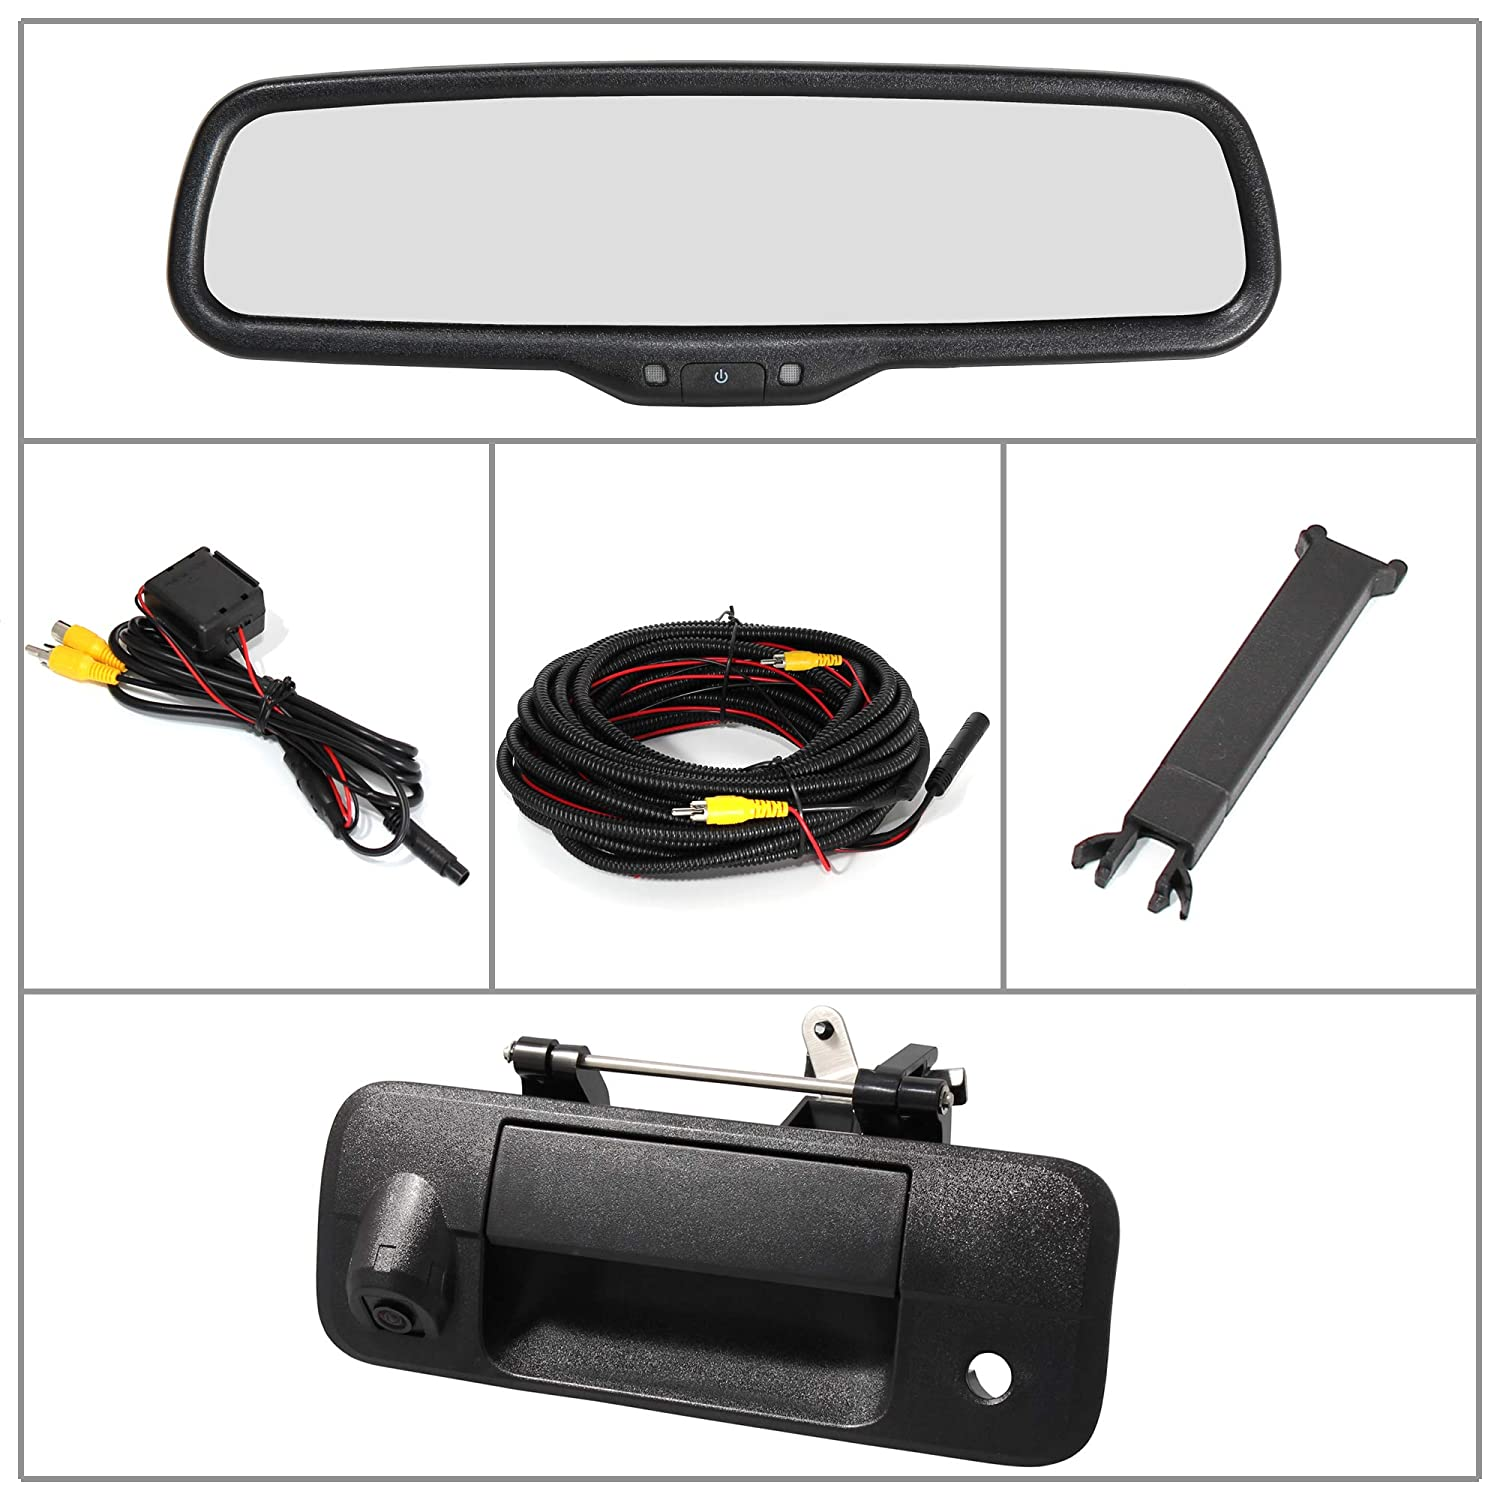 Eway for Toyota Tundra 2010-2014 4.3 Rear View Mirror Monitor with Tailgate Handle Backup Camera Kit Parking IR Waterproof CCD Reverse Reversing Night Vision Car Safety Backing Auto Cameras